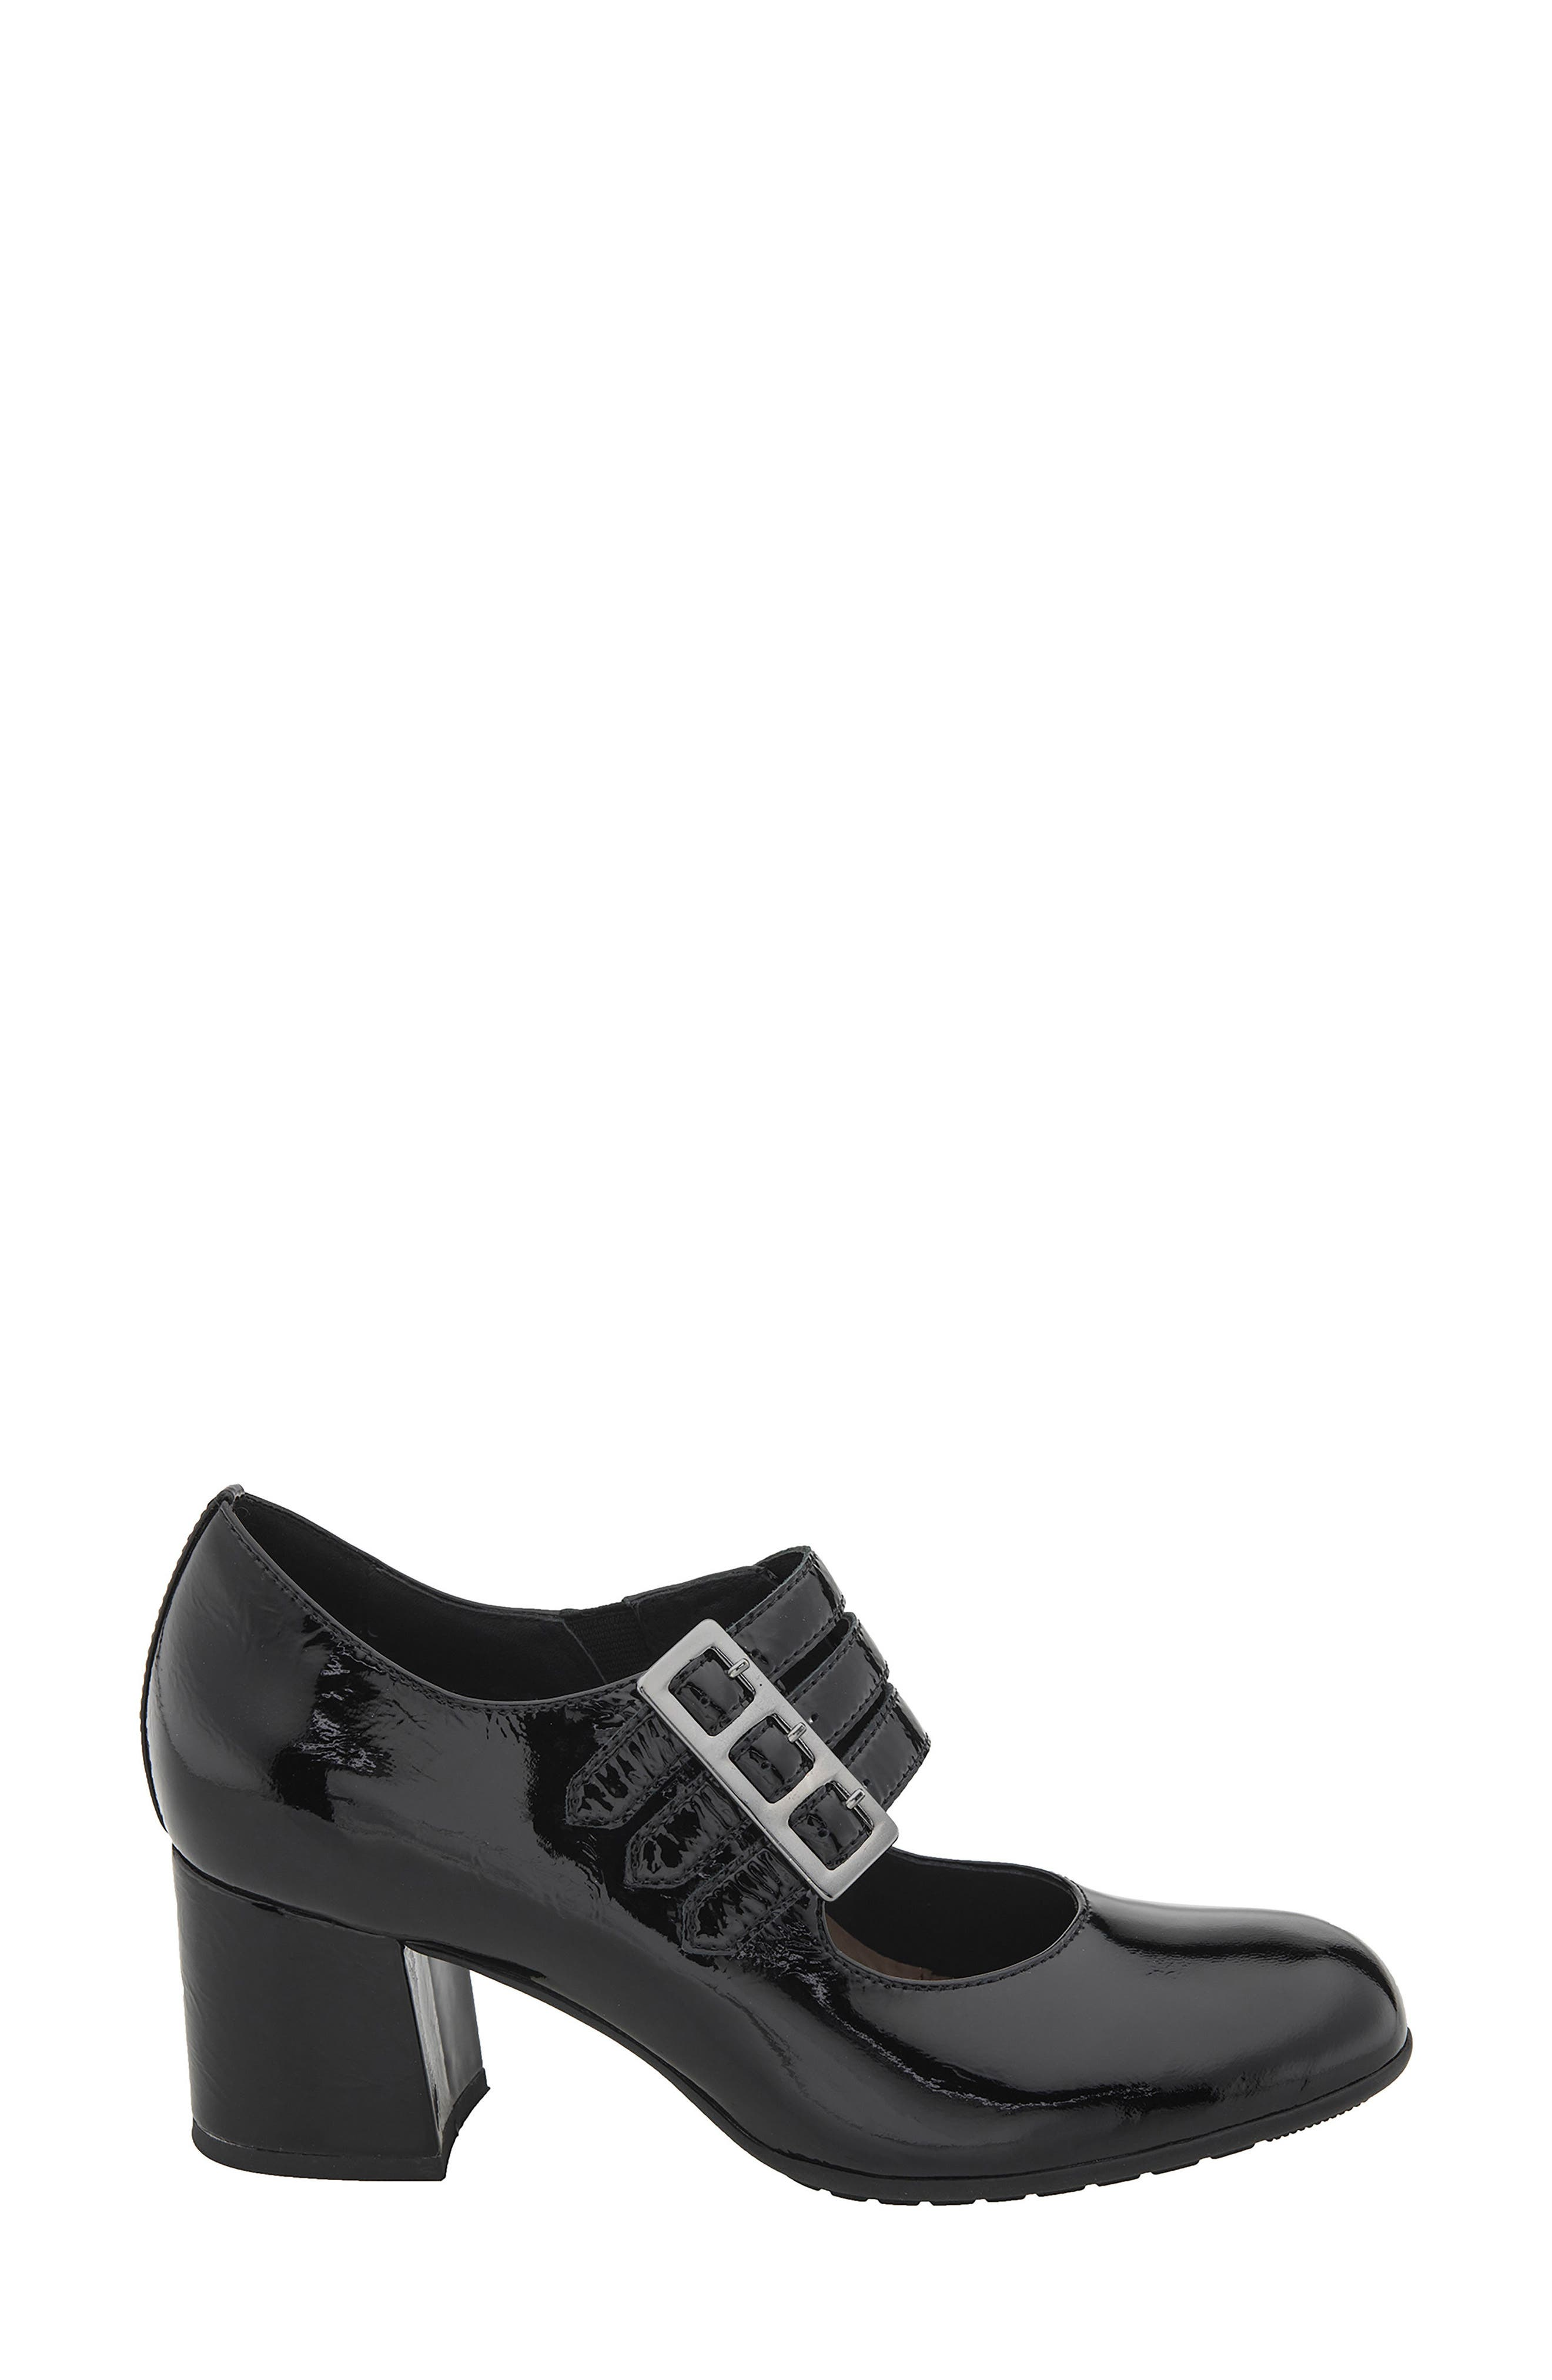 Fortuna Mary Jane Pump,                             Alternate thumbnail 3, color,                             Black Patent Leather